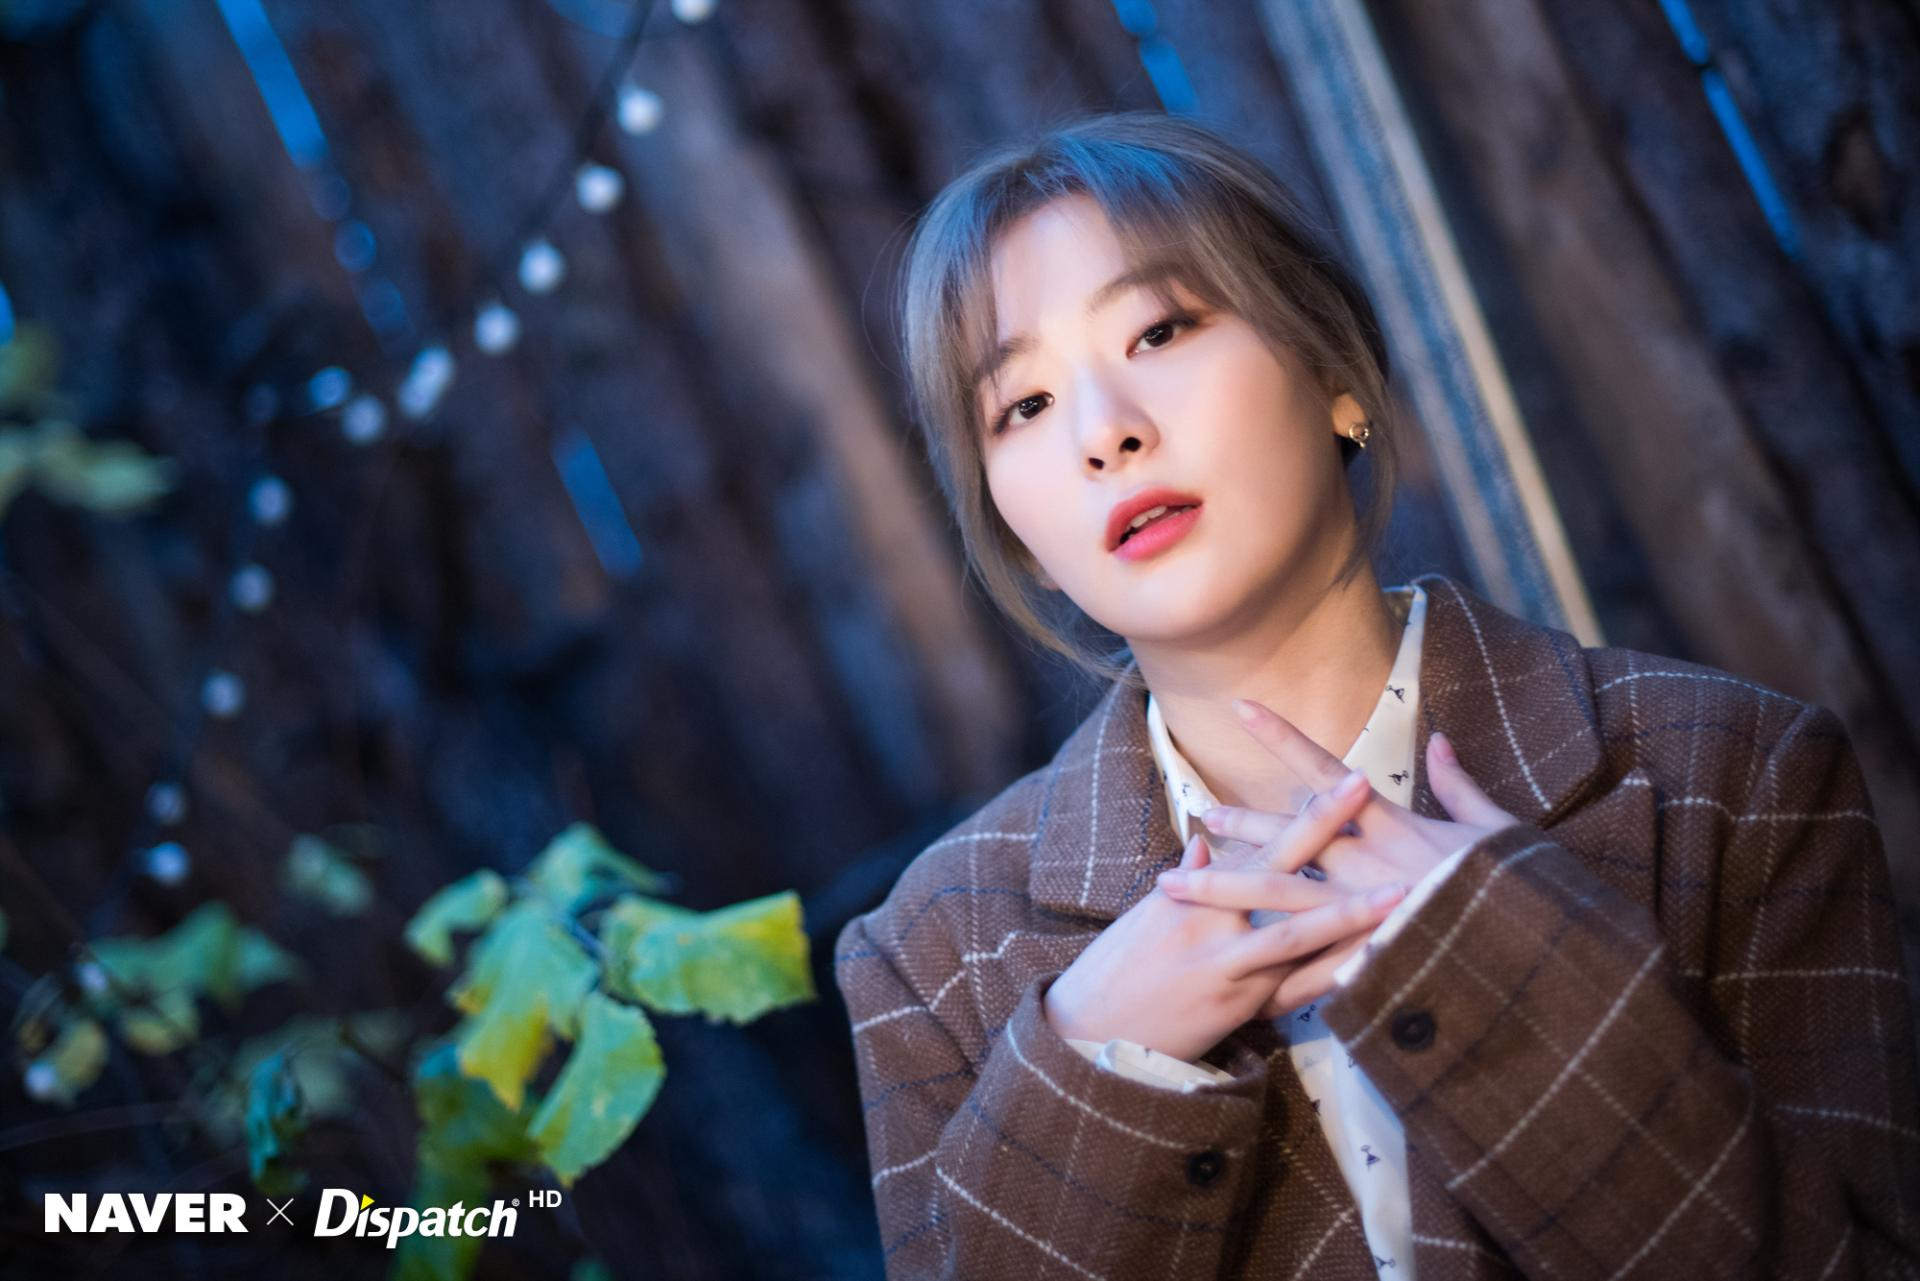 Red Velvet images Seulgi HD wallpaper and background photos 41723604 1920x1281